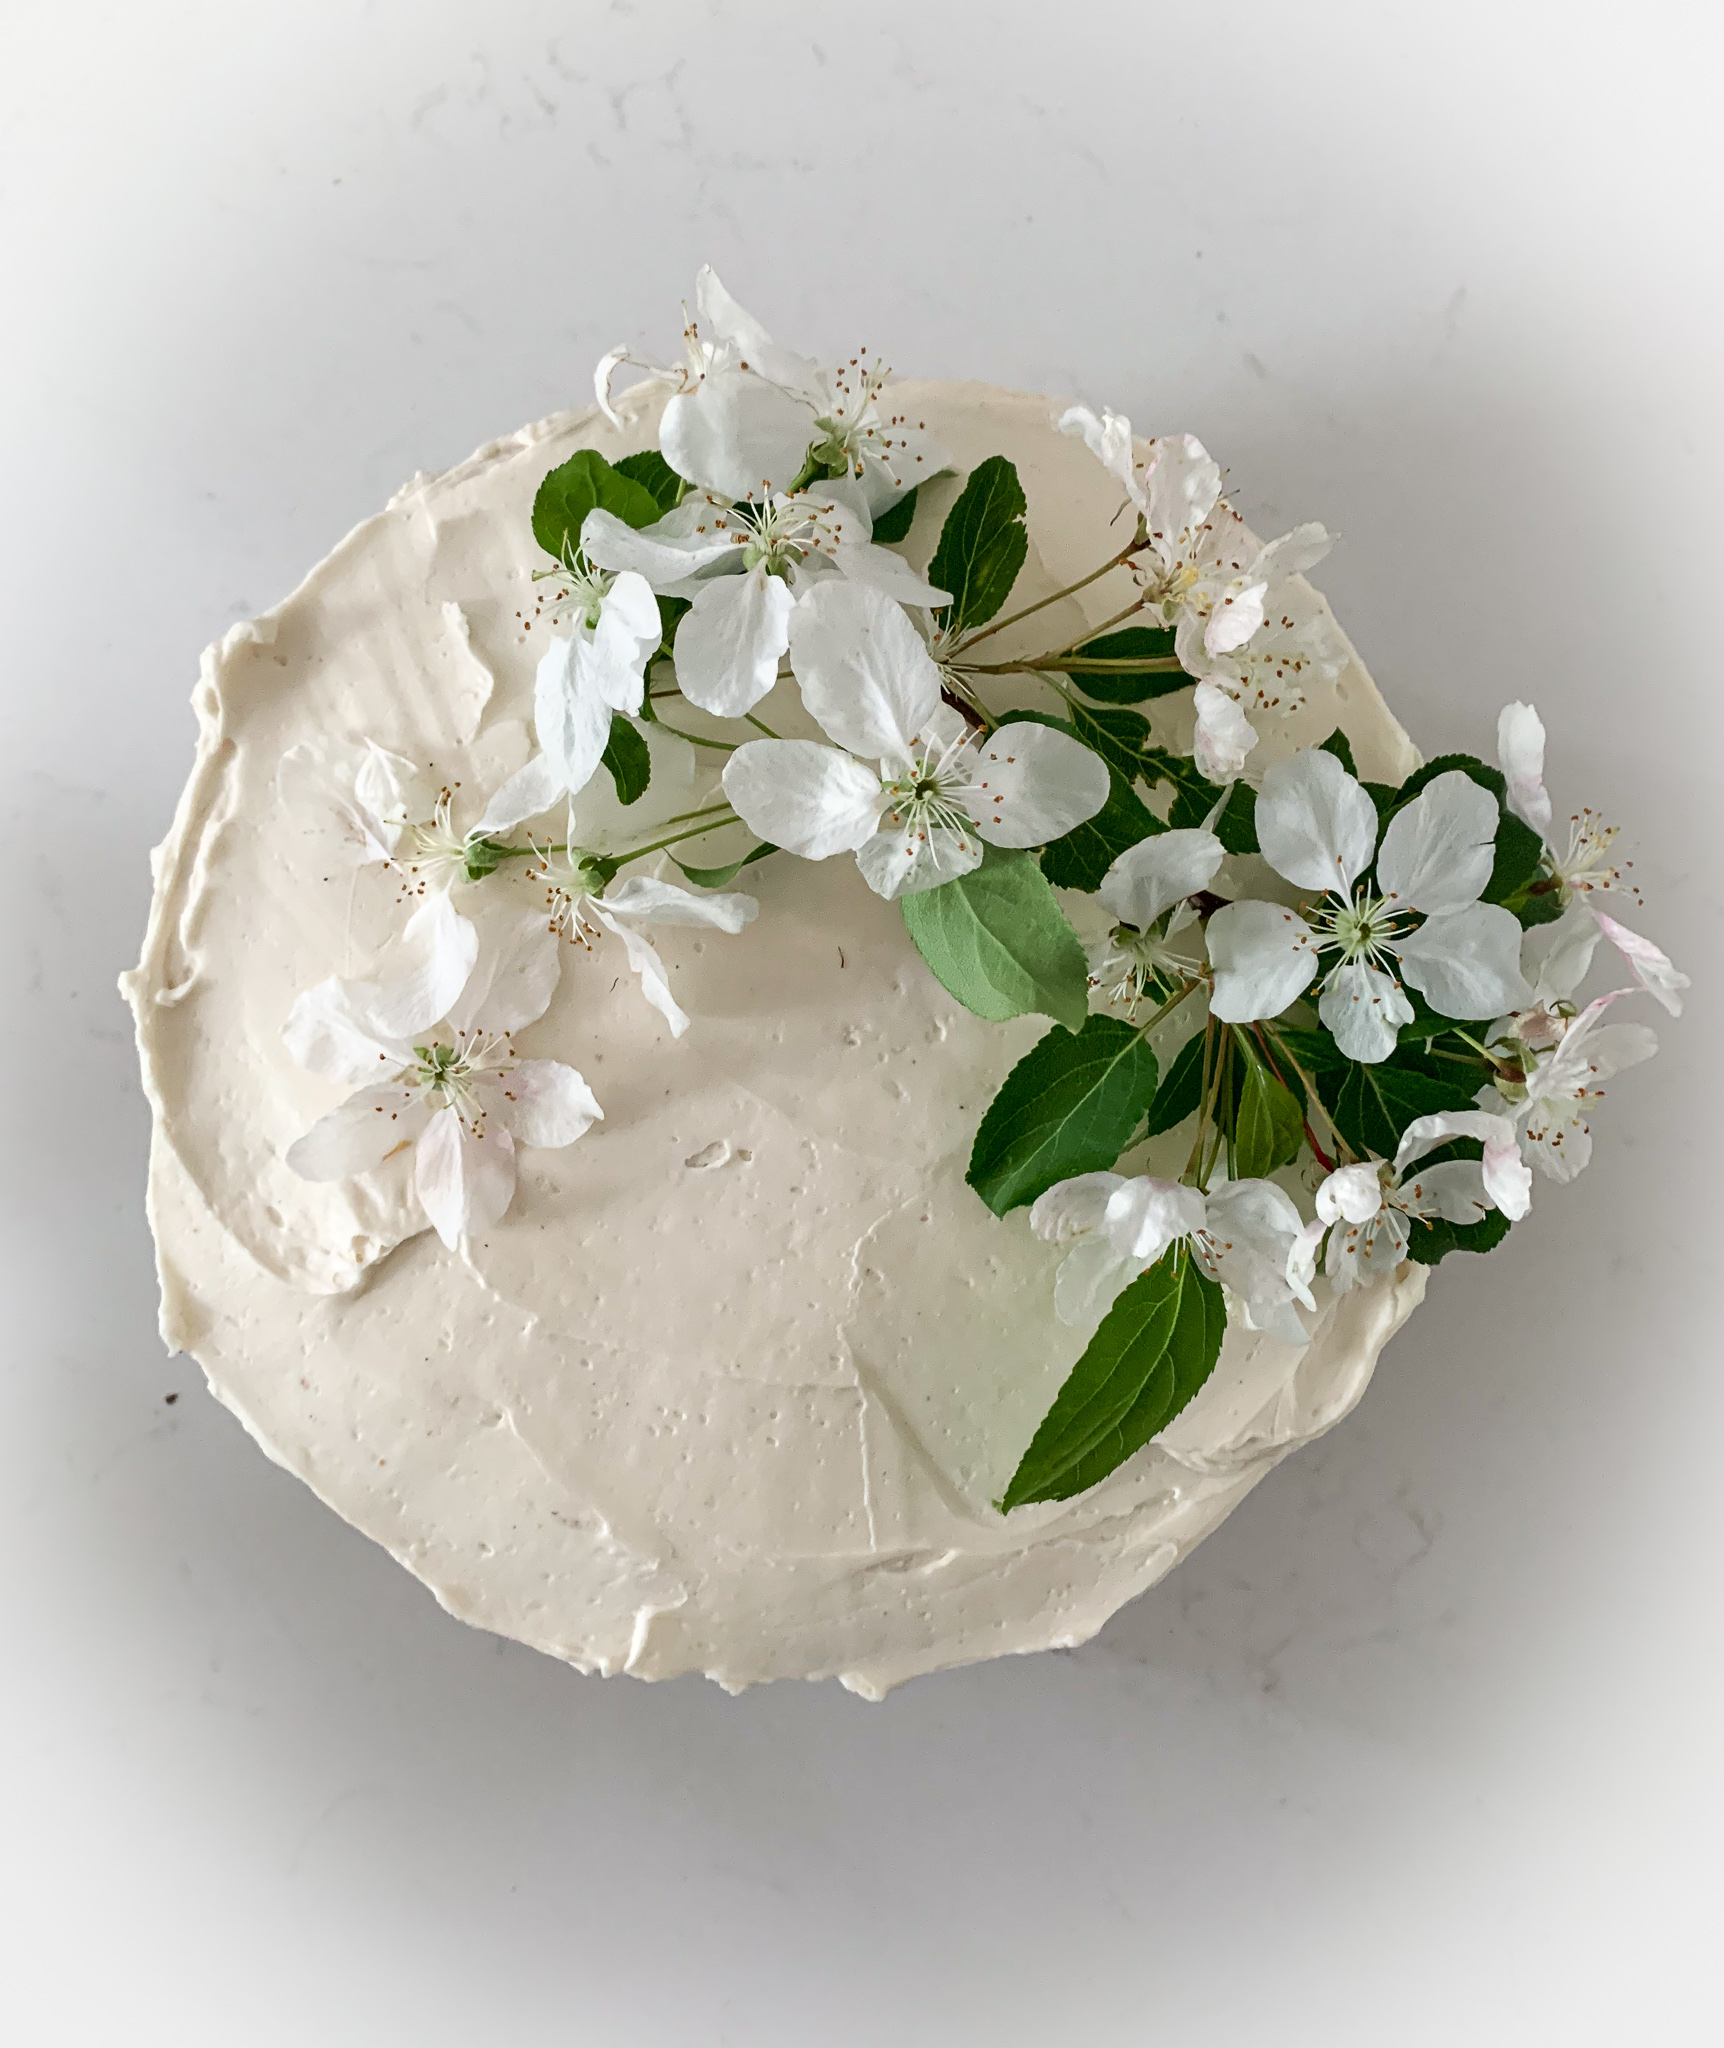 cake with apple blossoms